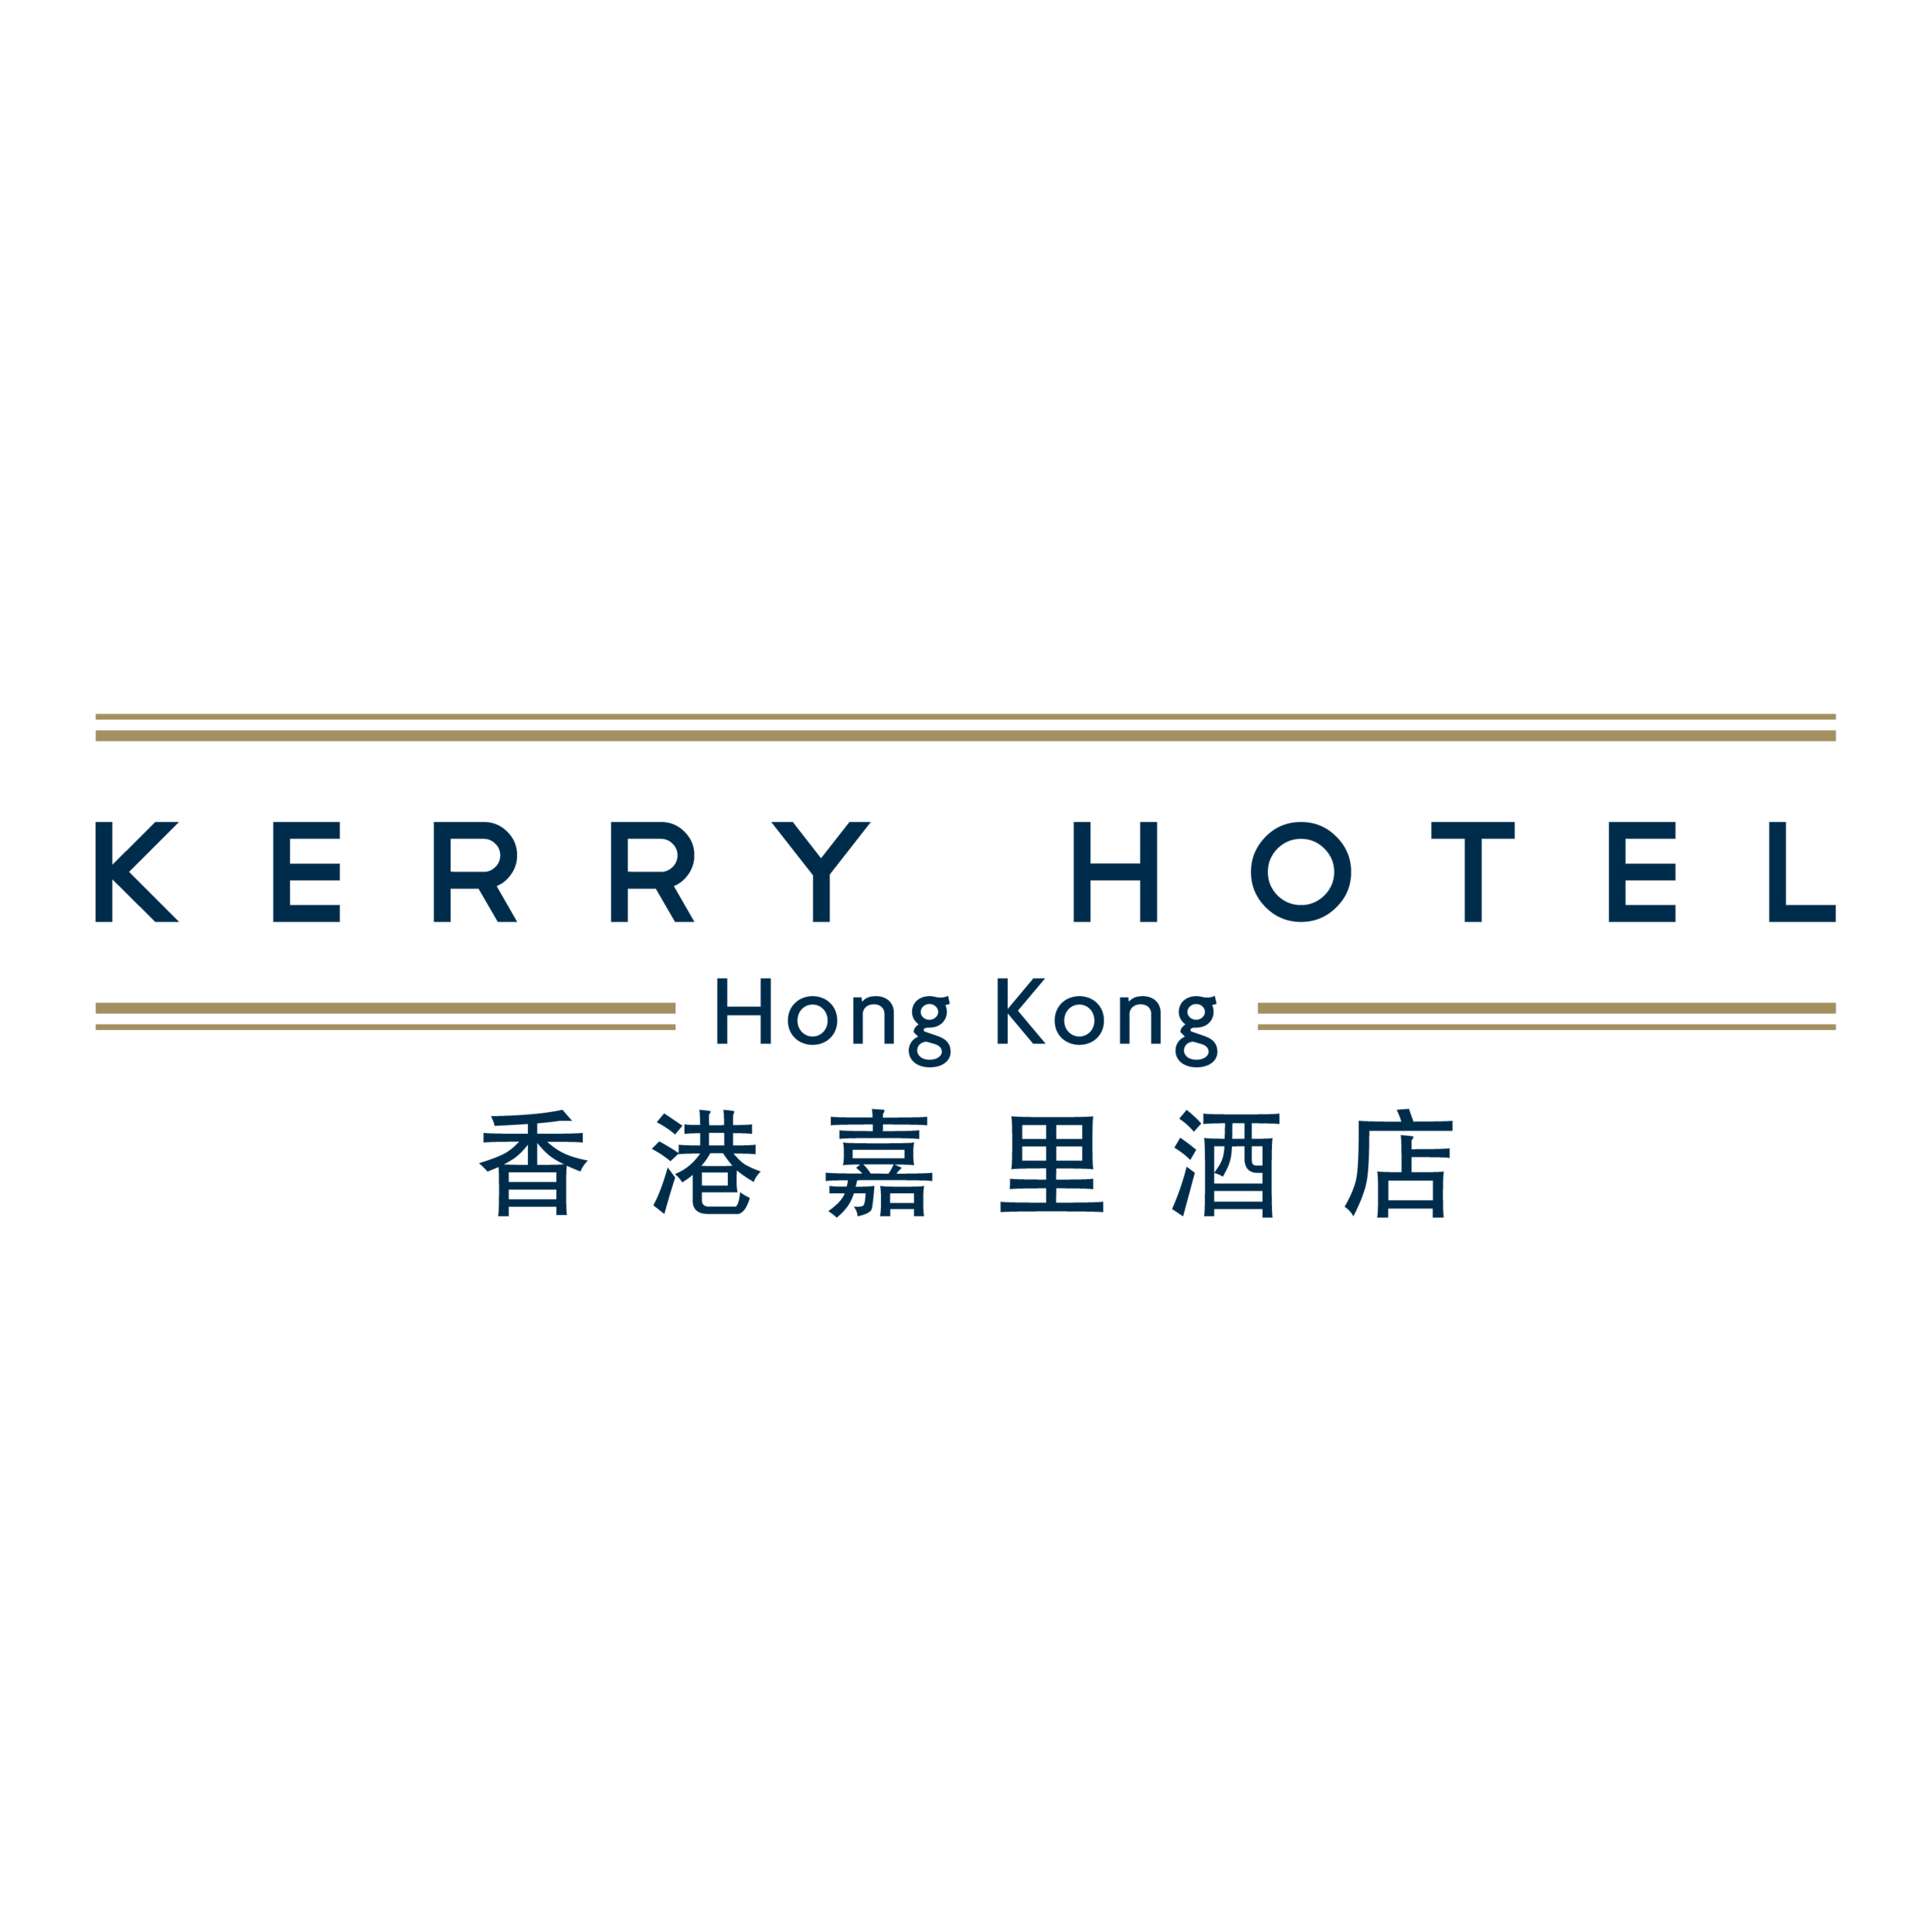 Kerry_hotel copy.png